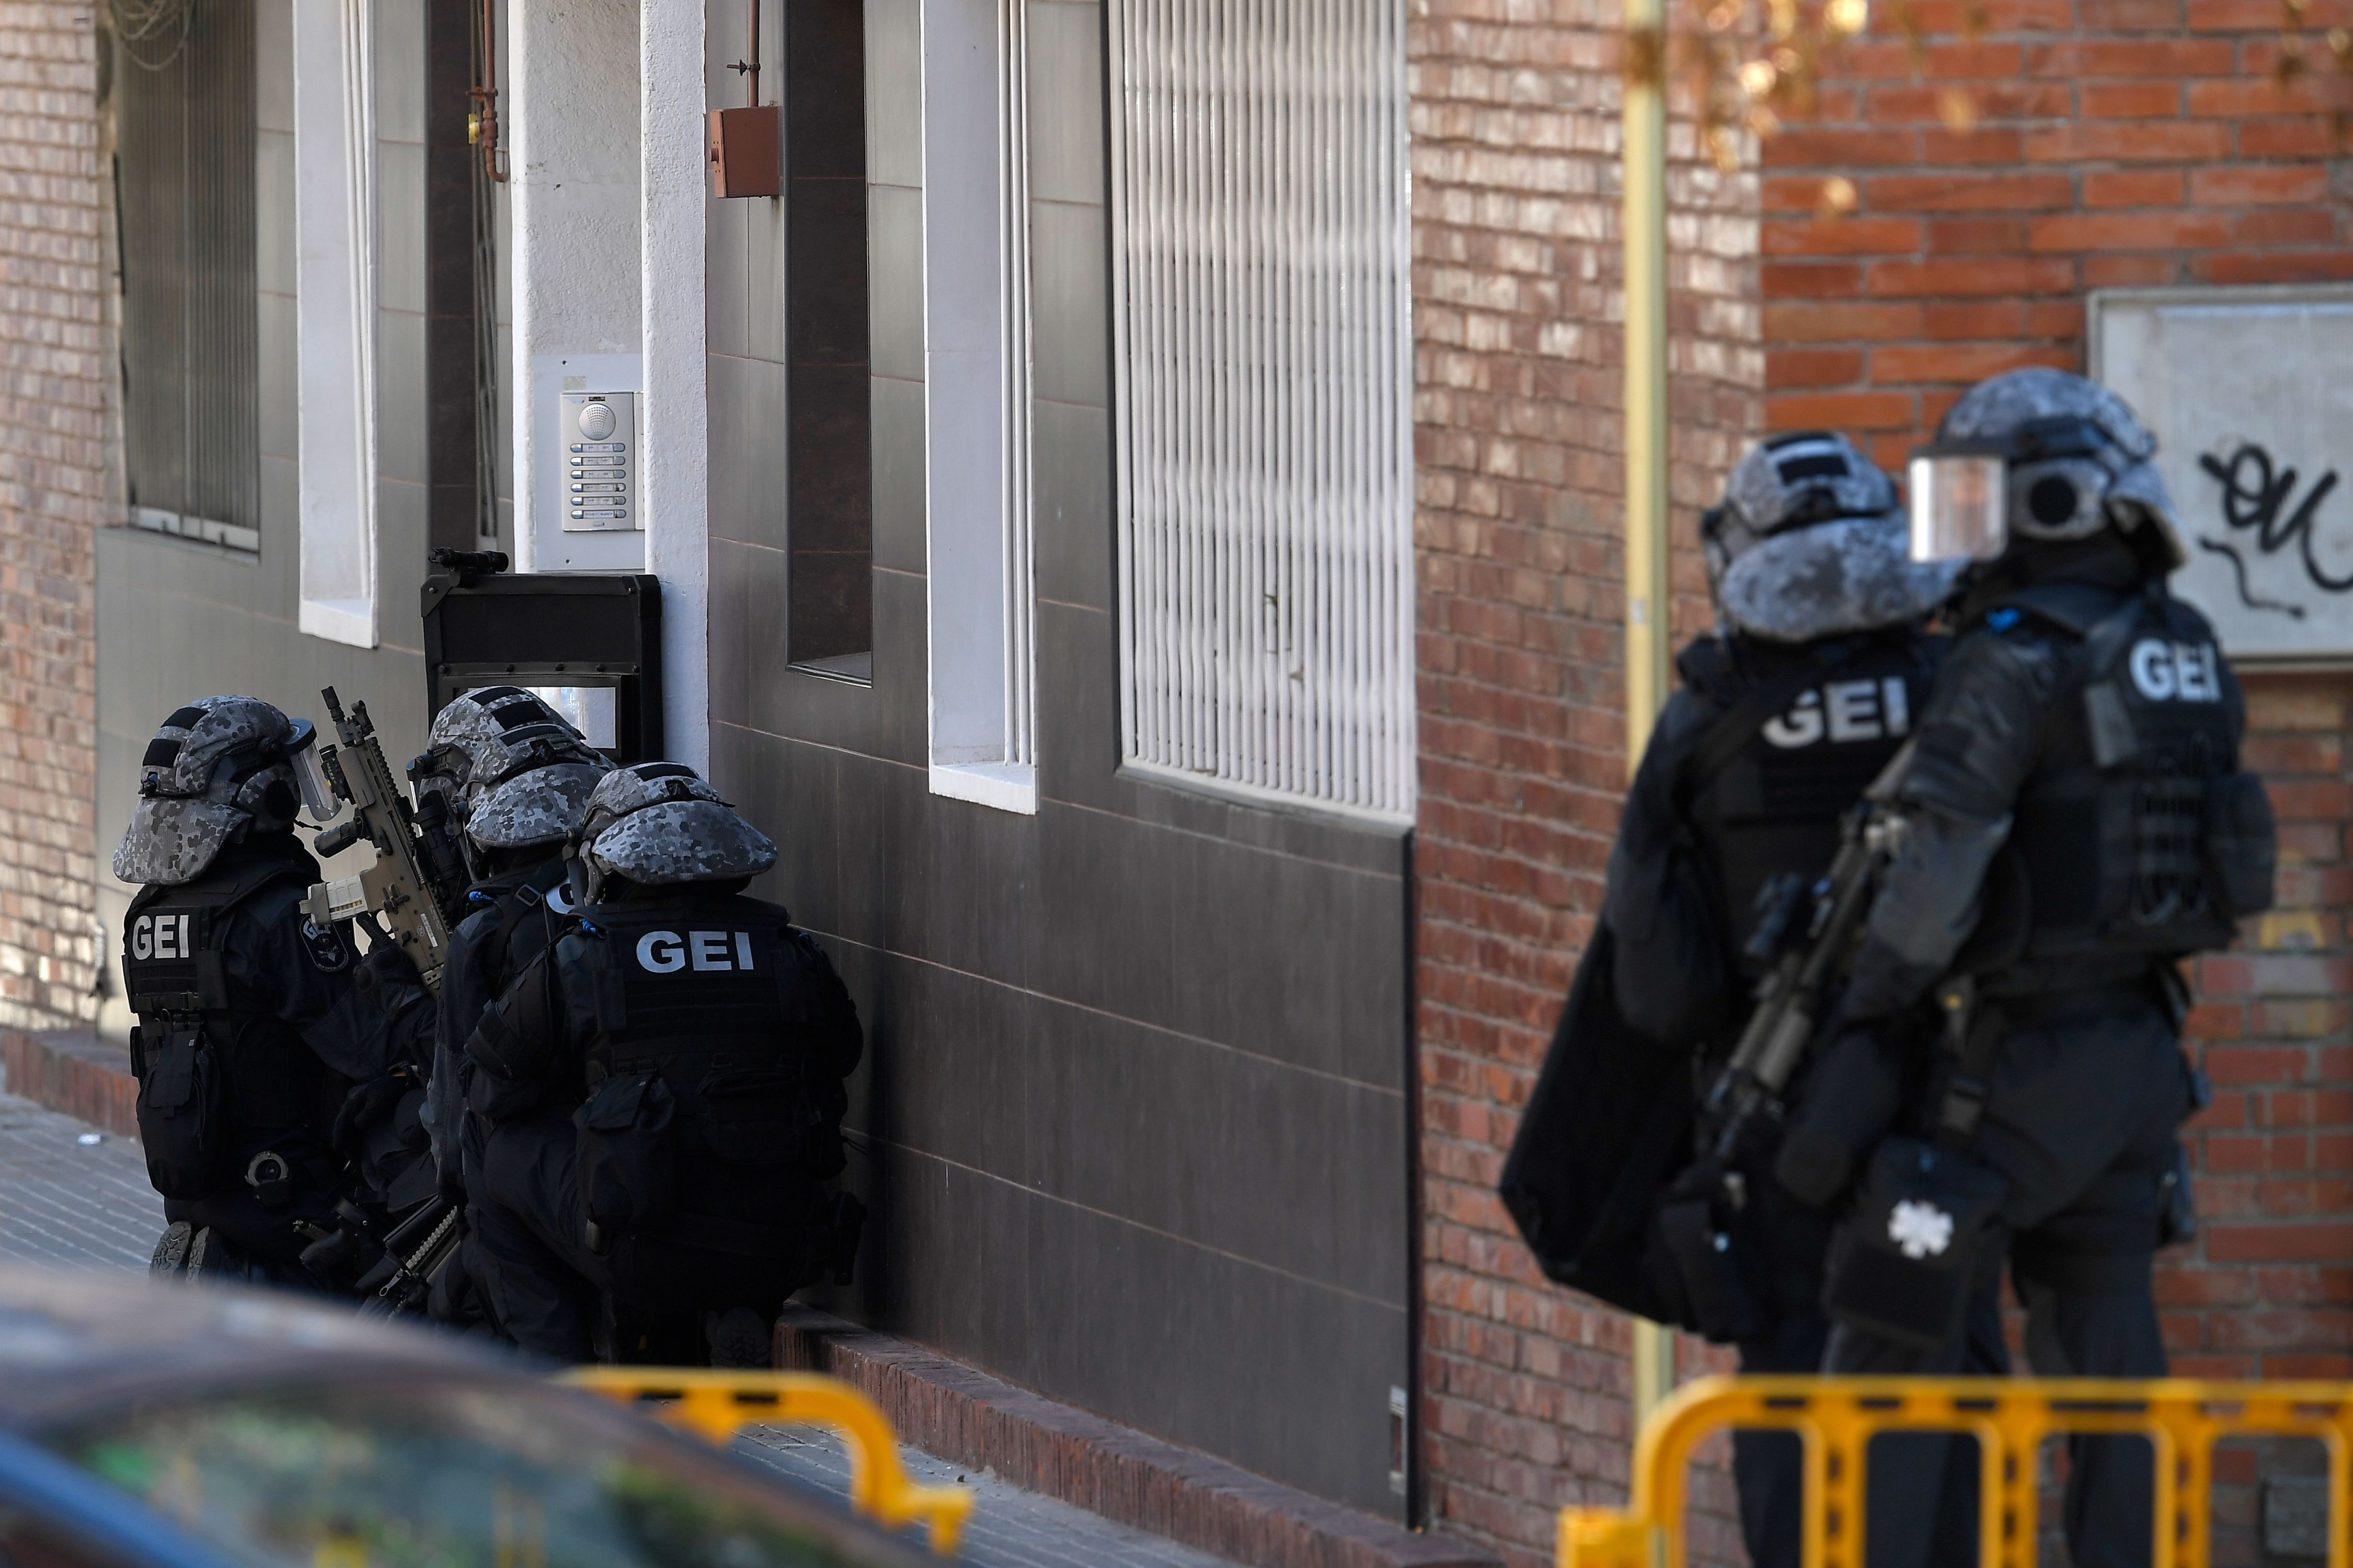 Special police forces prepare to raid the apartment building of a man who tried to attack a police station in Cornella near the northeastern Spanish city of Barcelona on August 20, 2018. - A man armed with a knife was killed when he attacked a police station near Barcelona, police said. (Photo by LLUIS GENE / AFP) (Photo credit should read LLUIS GENE/AFP/Getty Images)